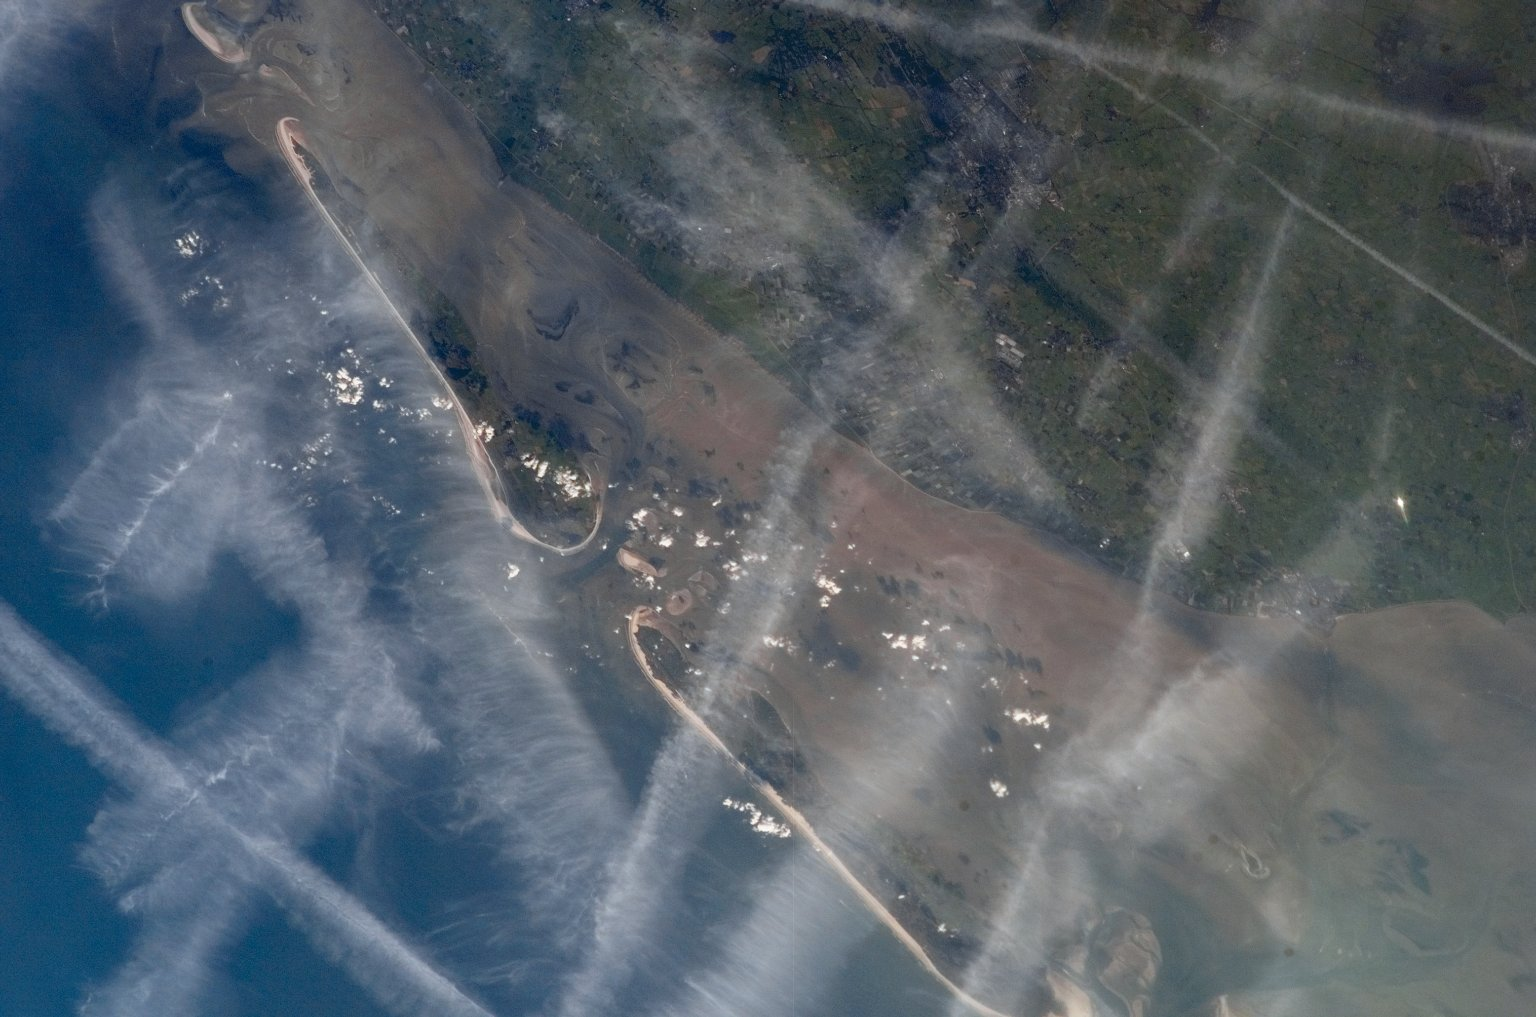 Earth Observations taken by STS-117 Crewmember